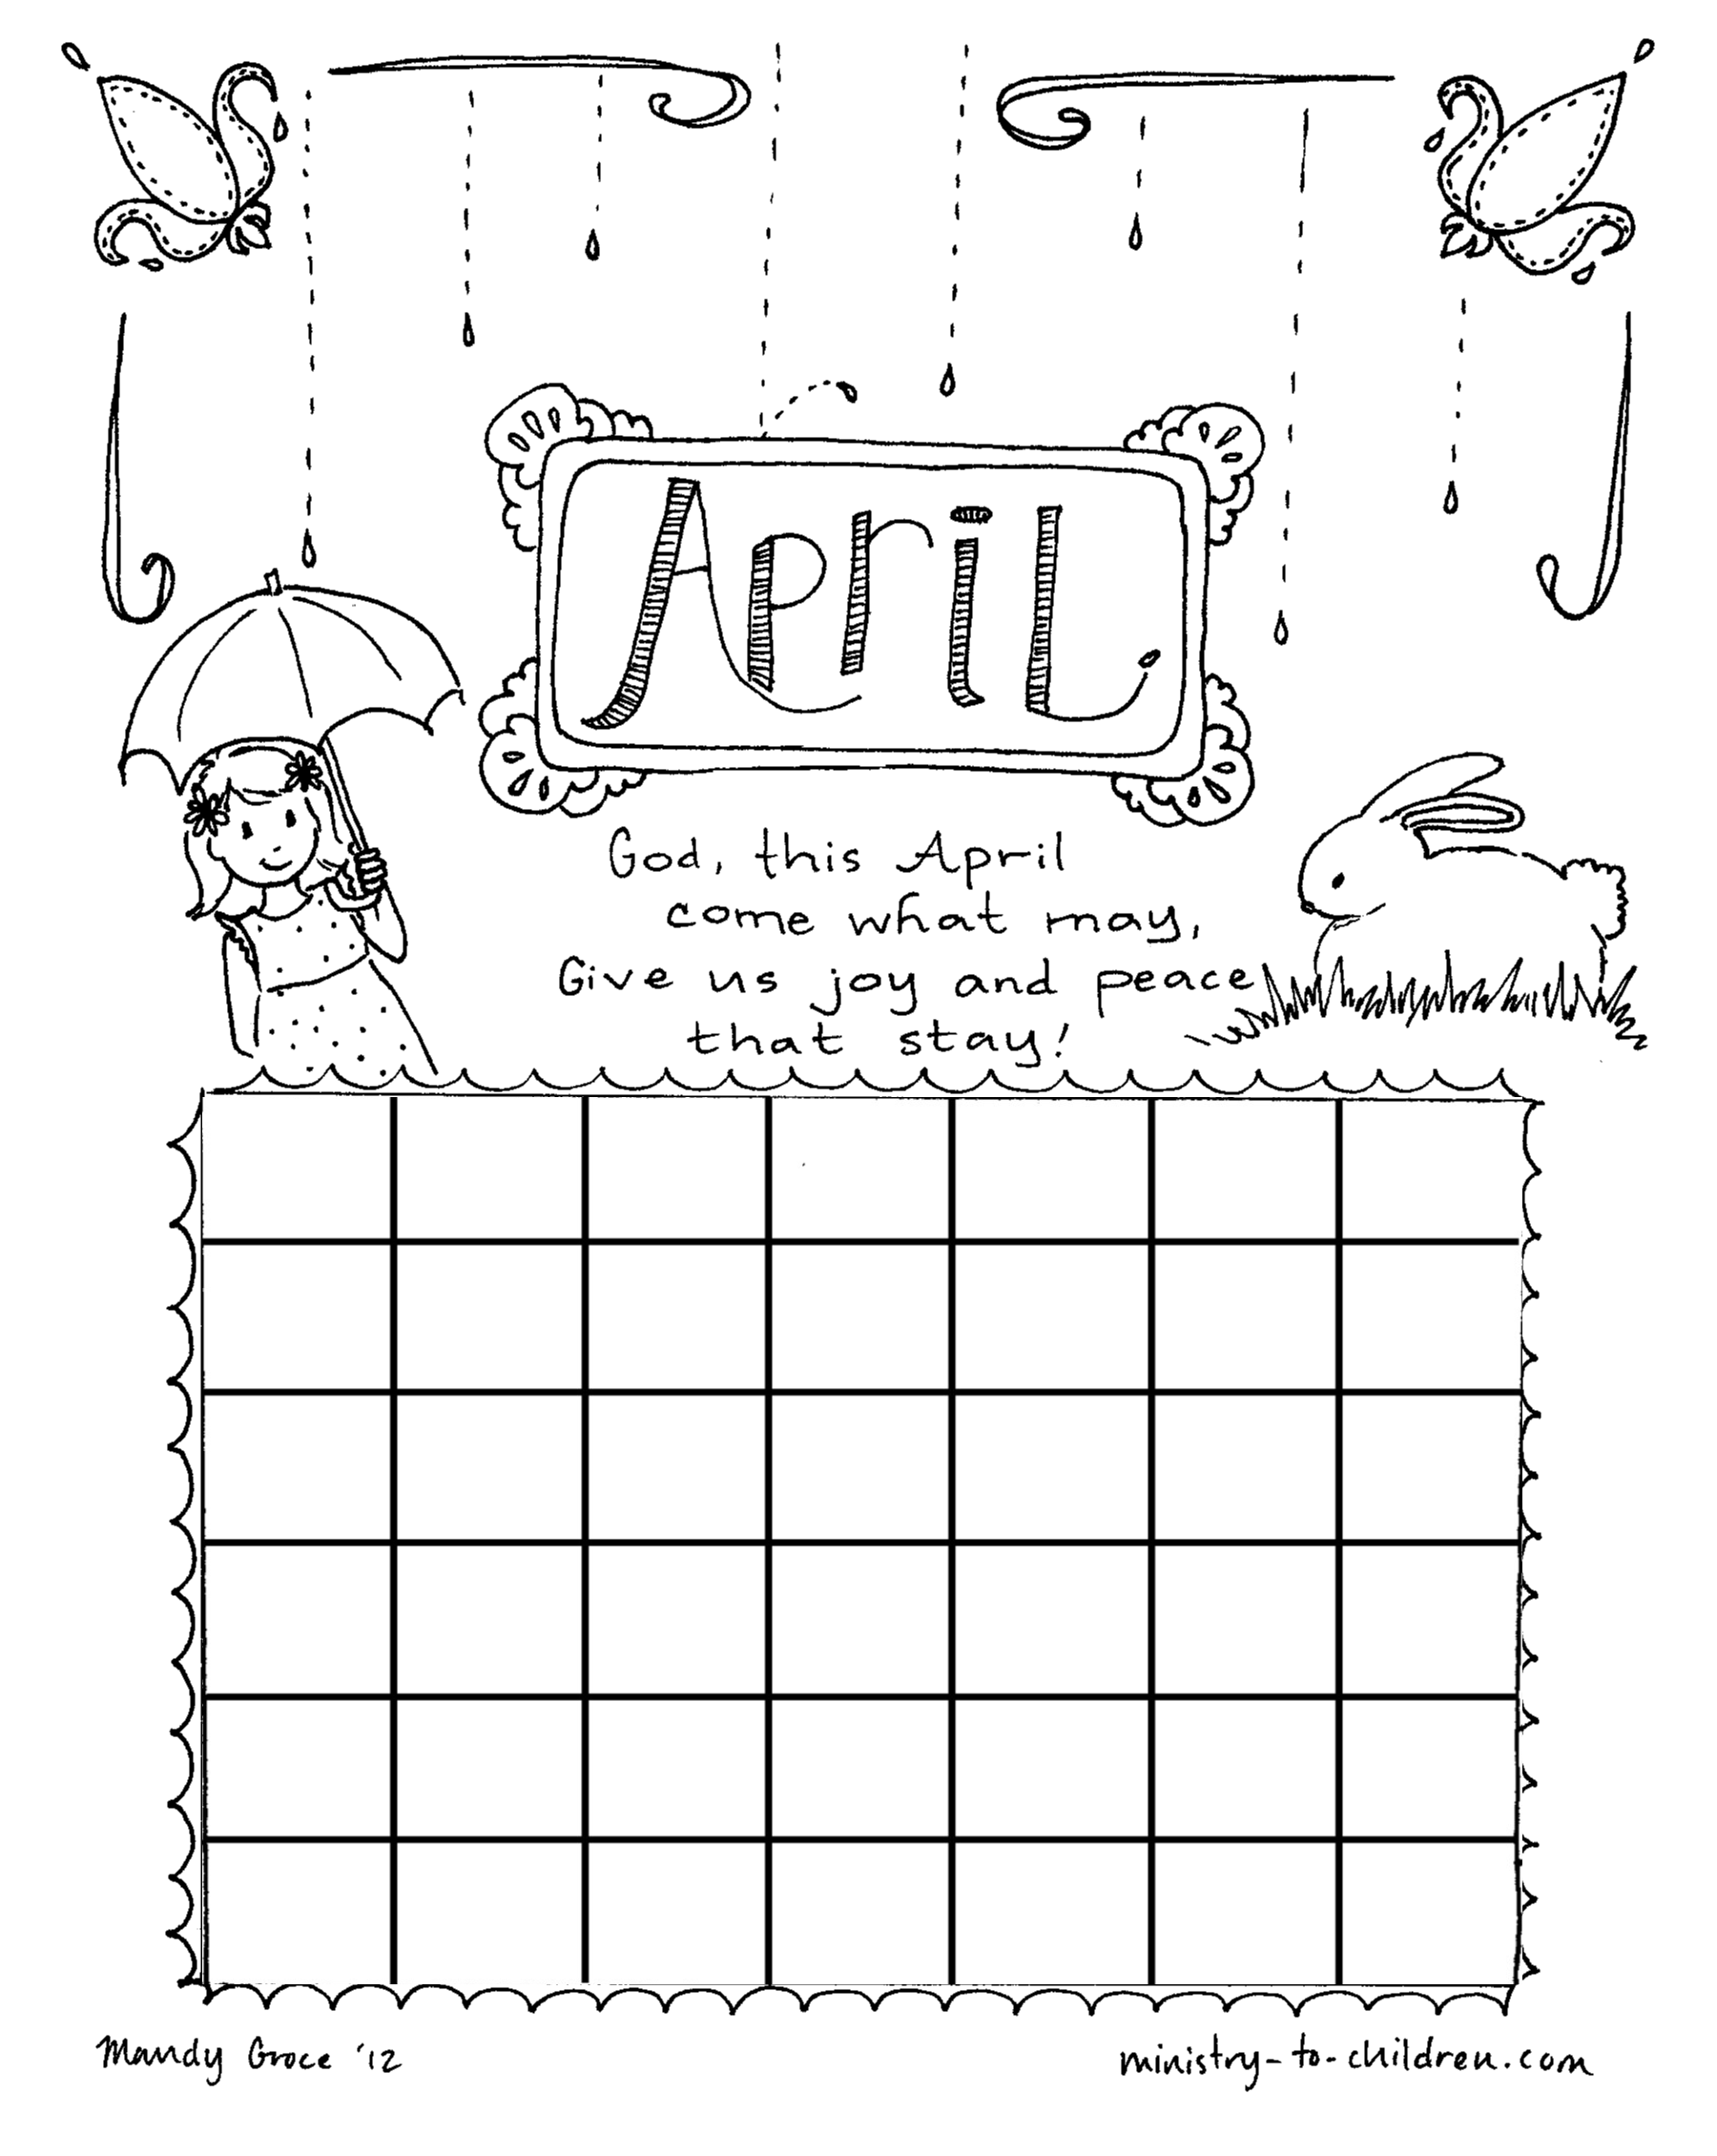 coloring calendars sector pages - photo#18